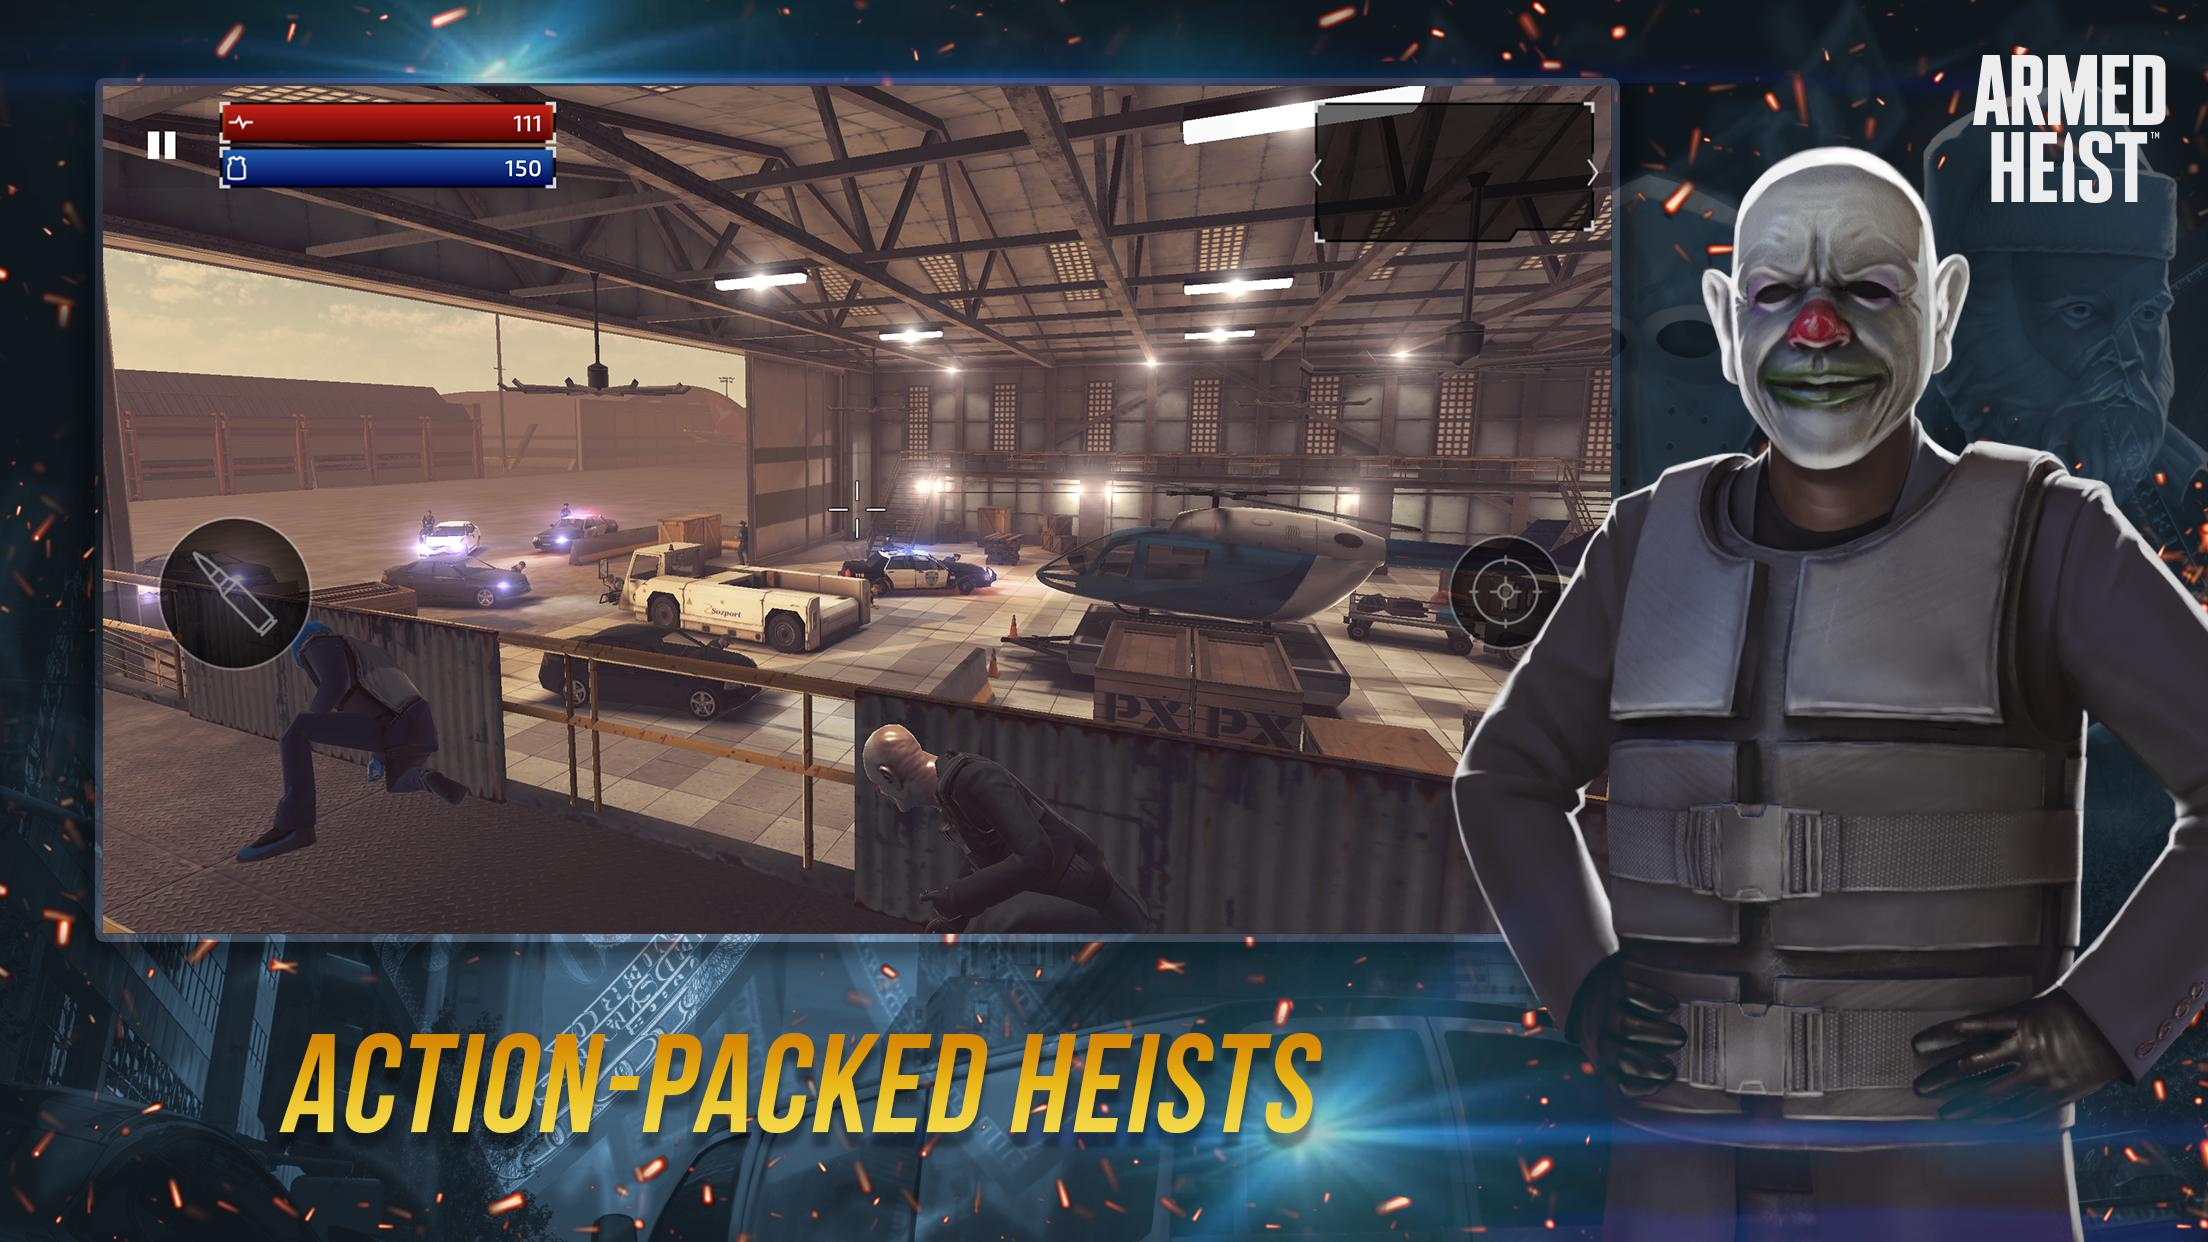 Armed Heist TPS 3D Sniper shooting gun games 2.1.1 Screenshot 13